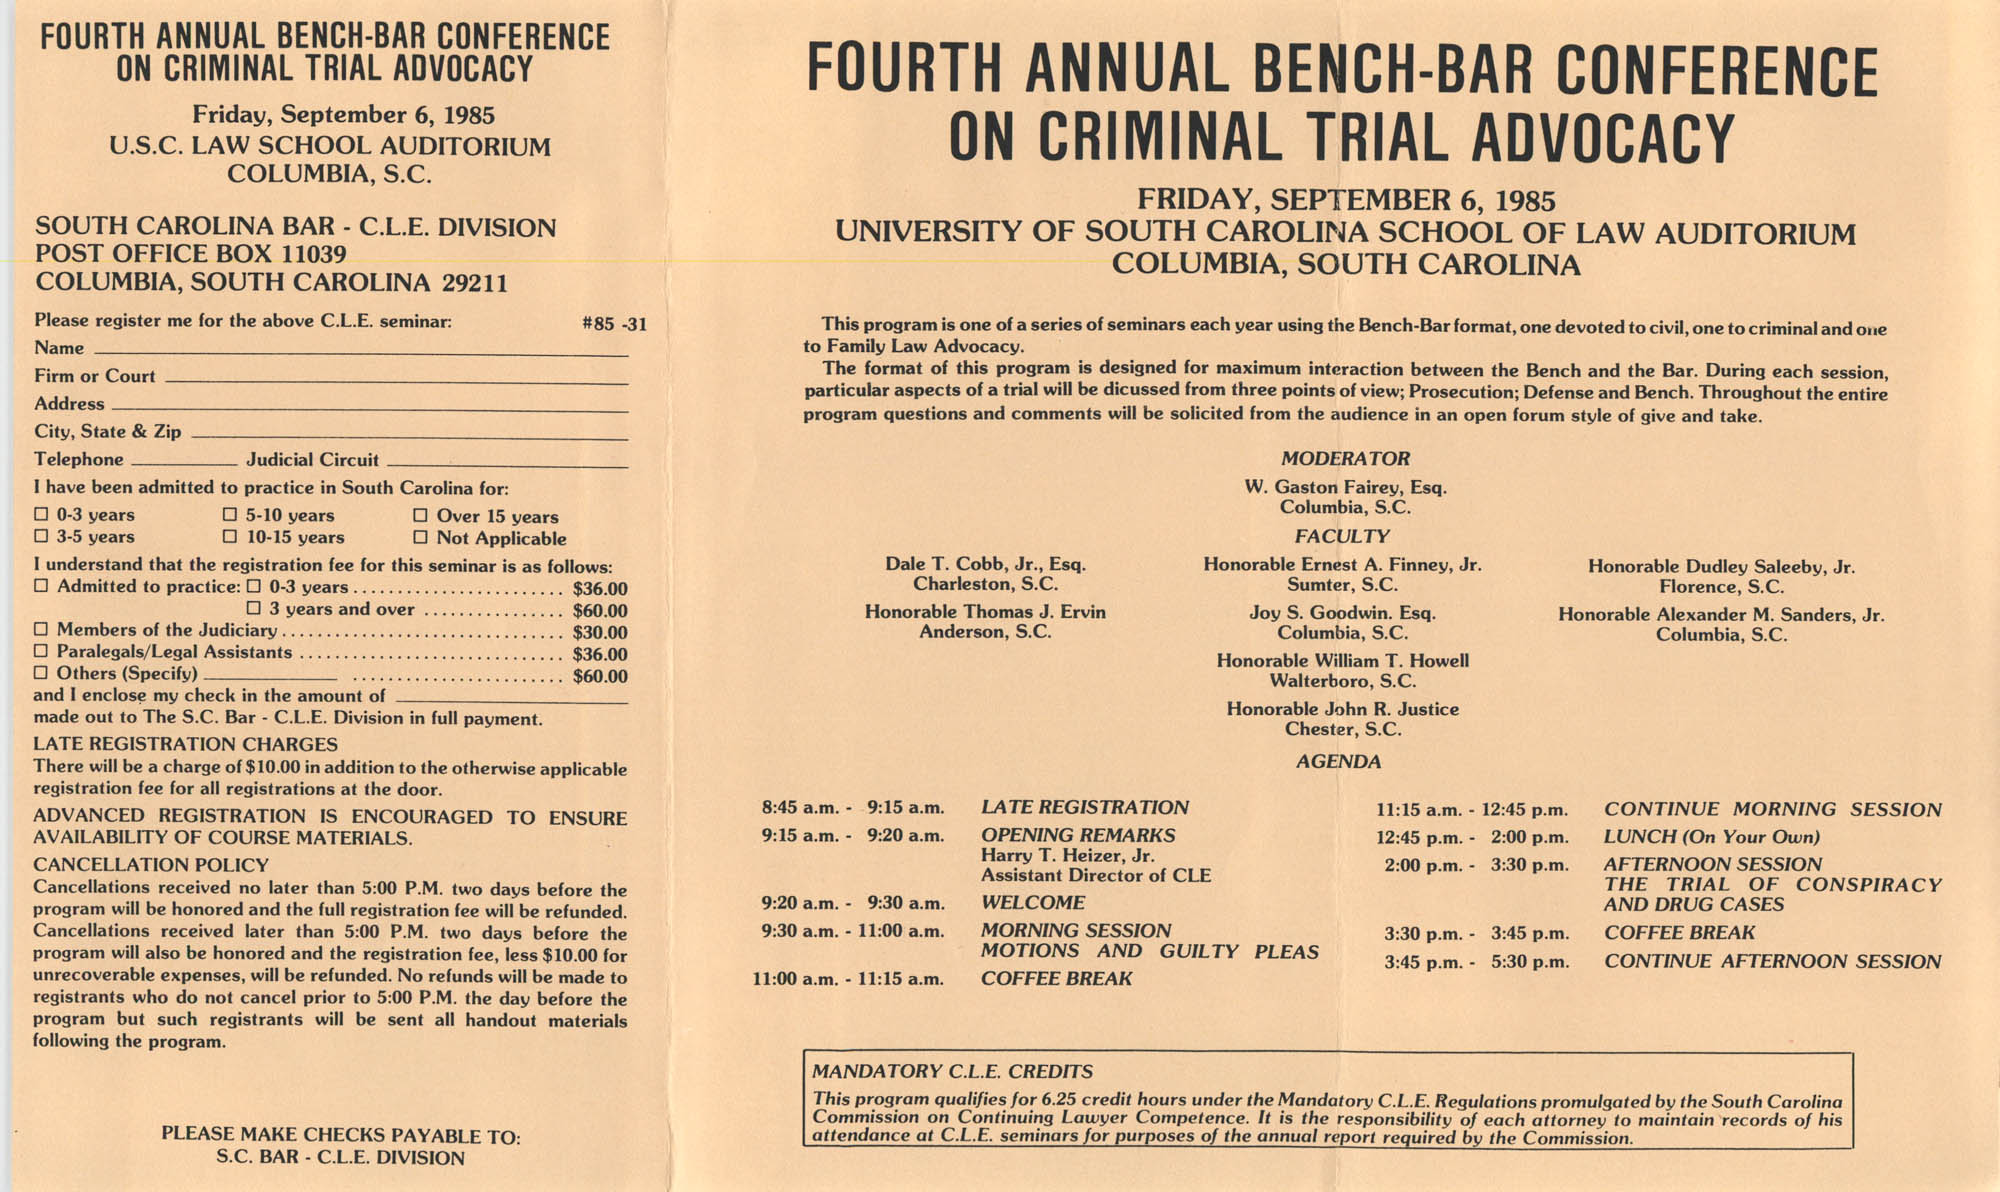 Fourth Annual Bench-Bar Conference on Criminal Trial Advocacy, Continuing Legal Education Seminar Pamphlet, September 6, 1985